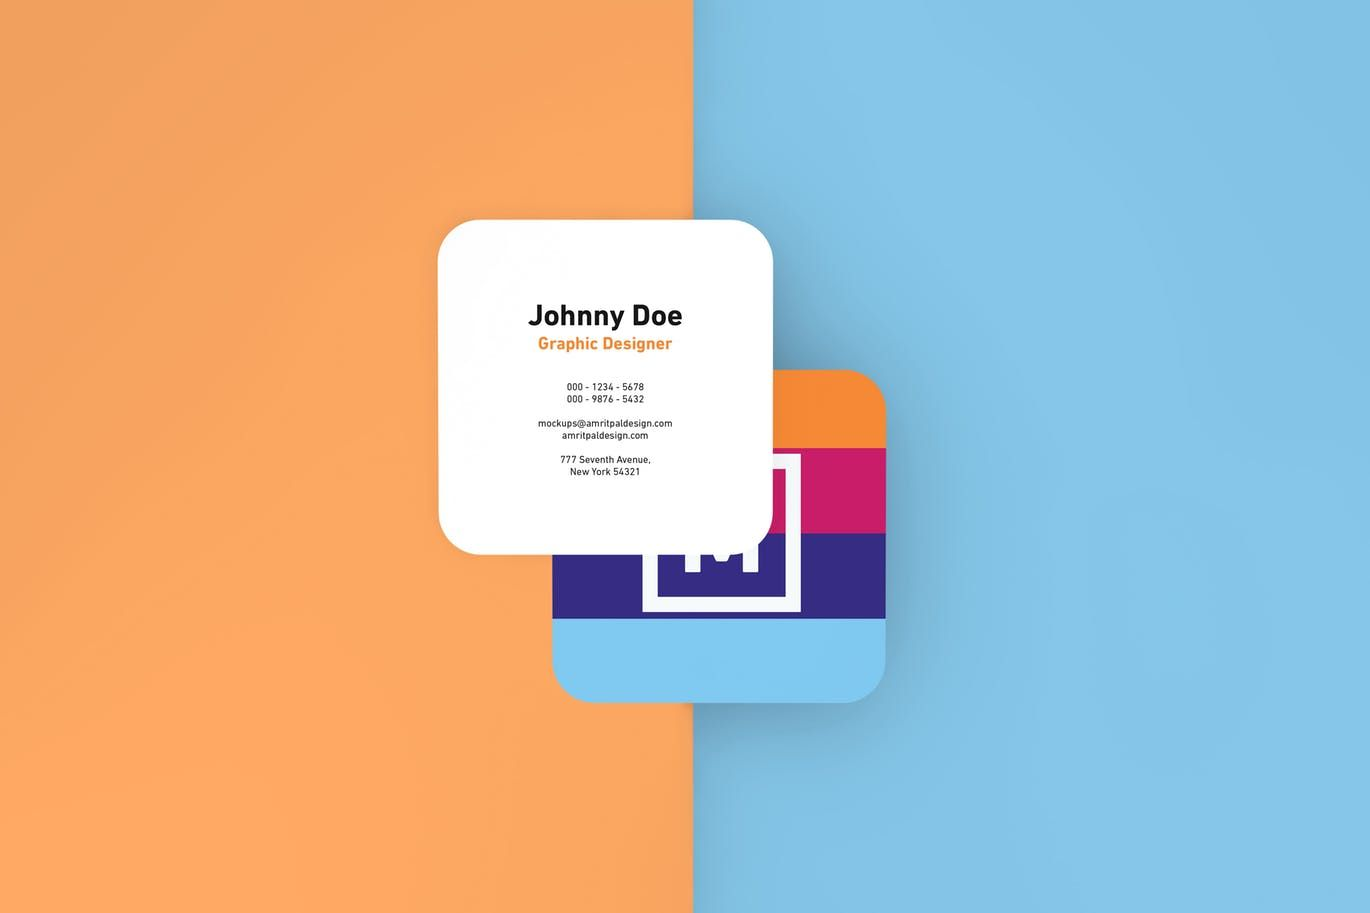 Round edges square business card mockups with images